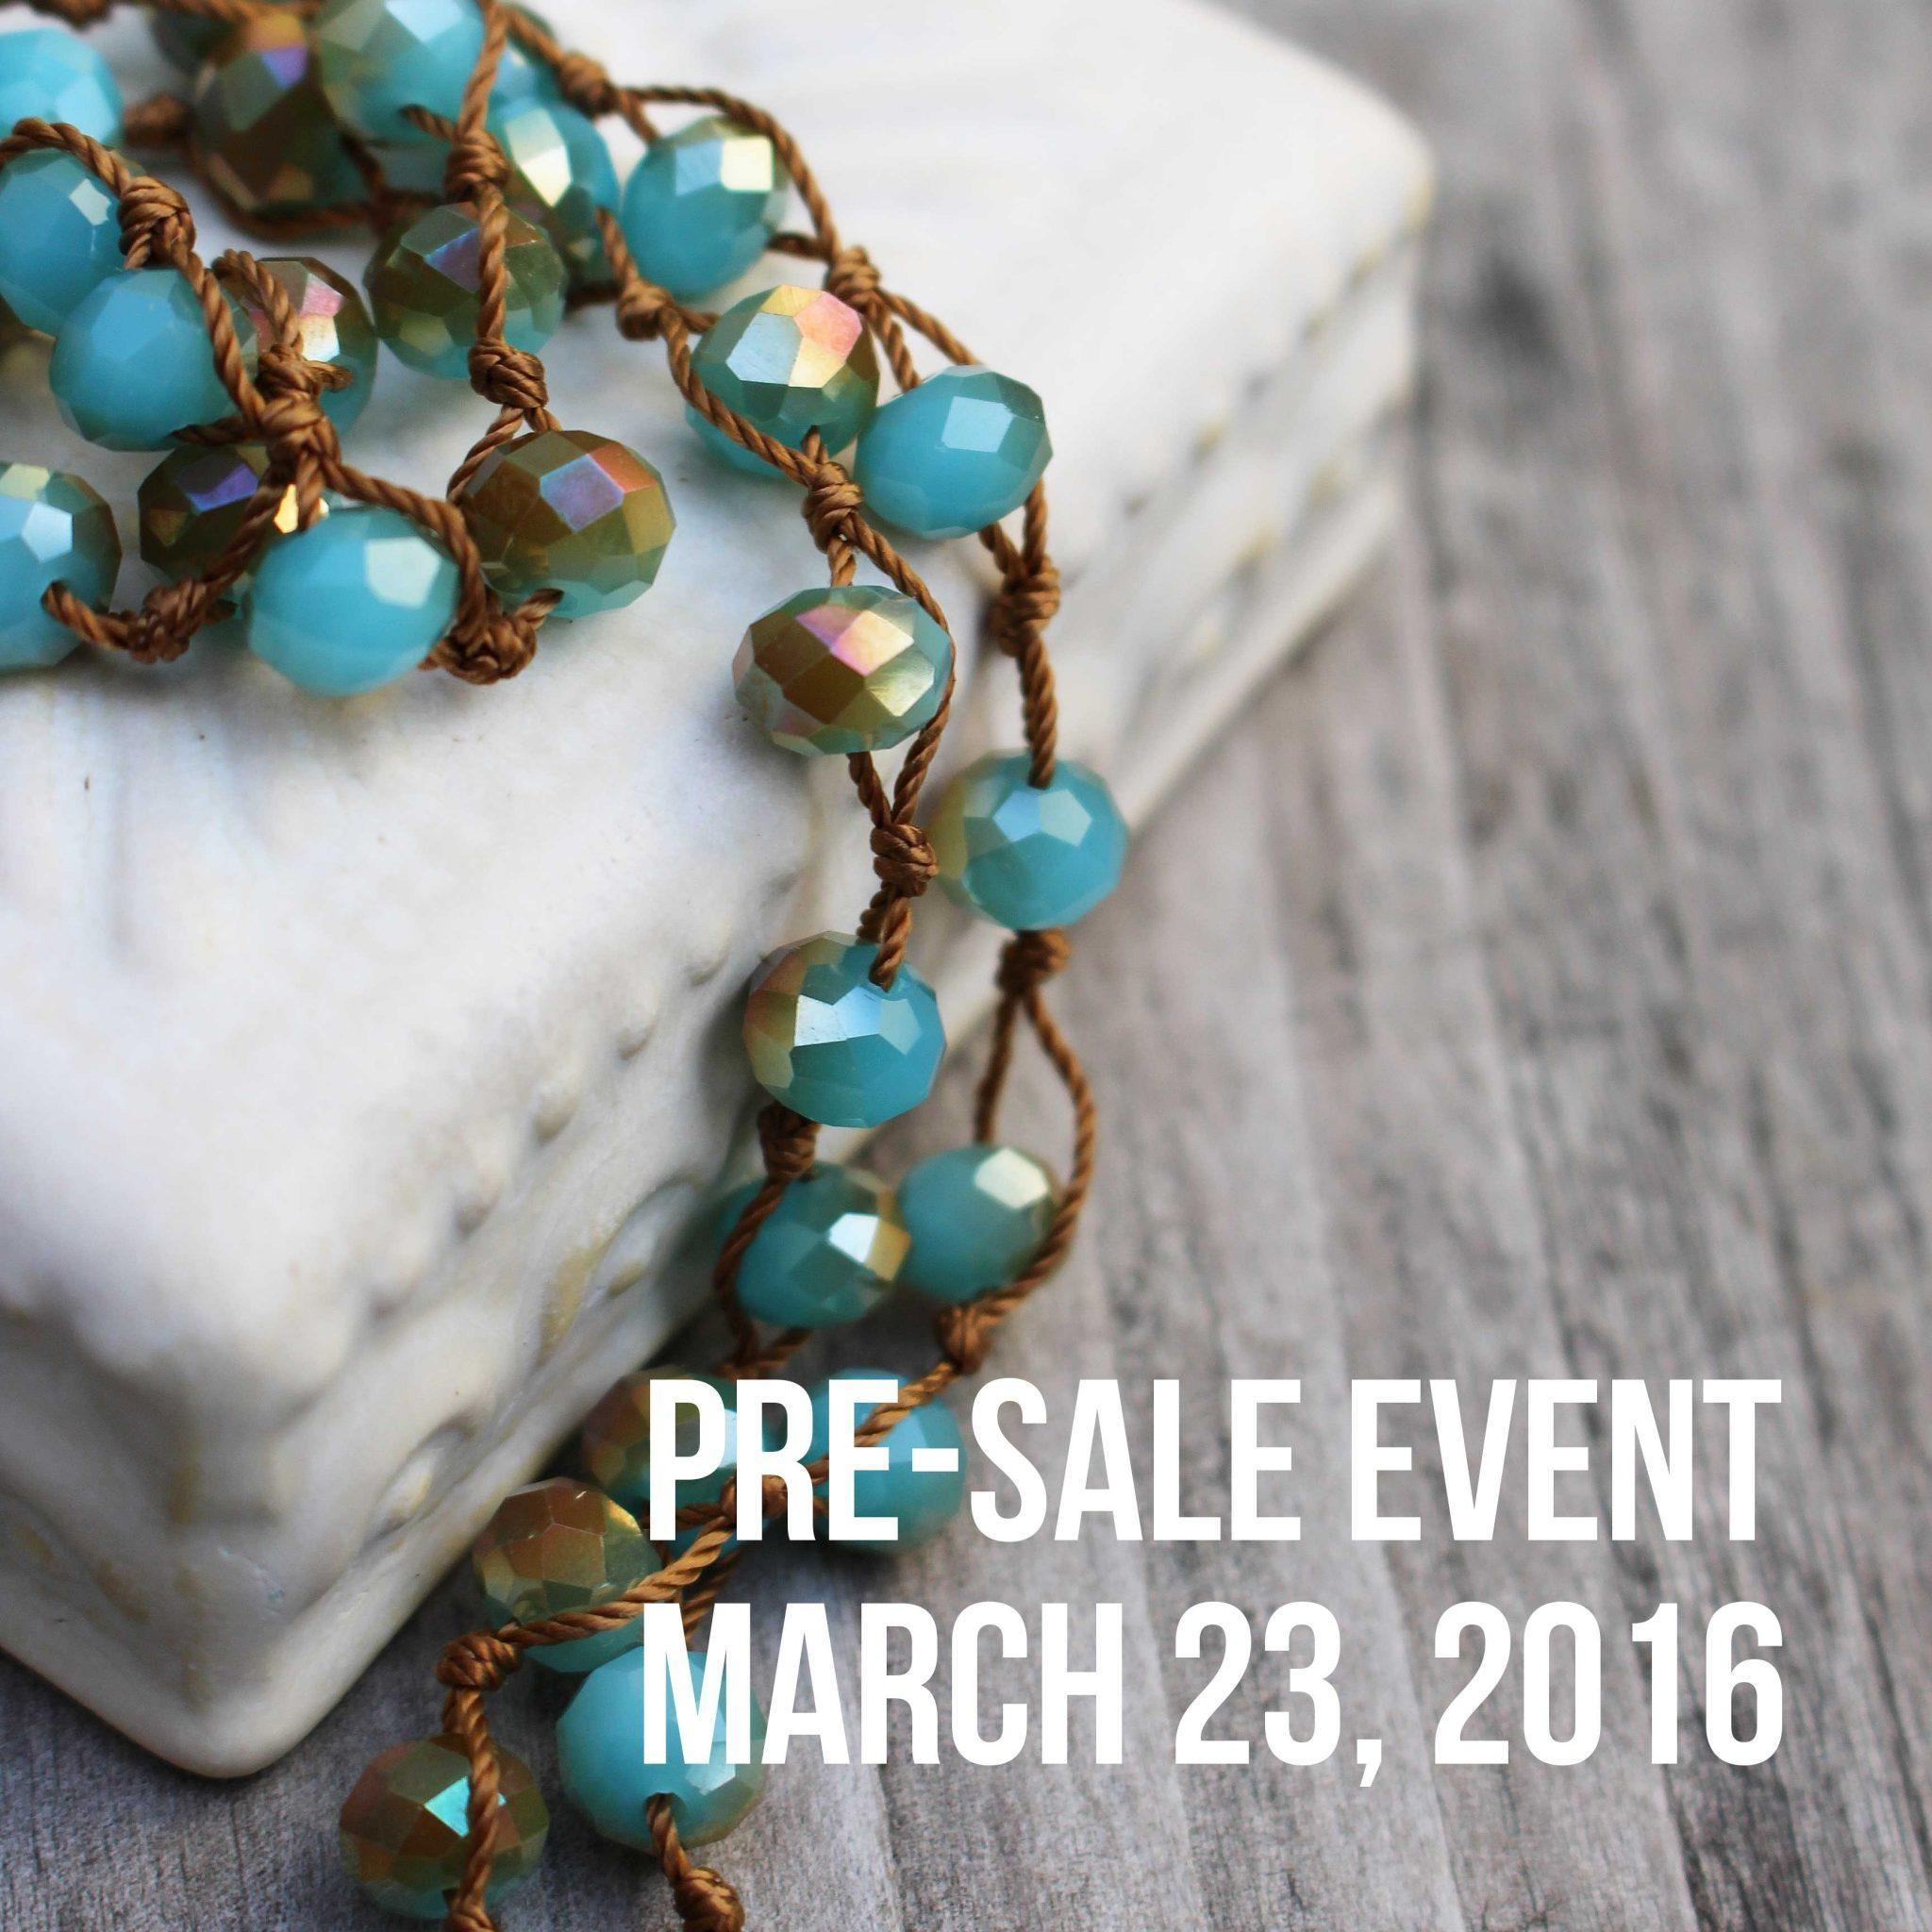 New diffuser jewelry pre-sale and secret launch on Facebook https://www.facebook.com/groups/enjoylifeoilsshop/